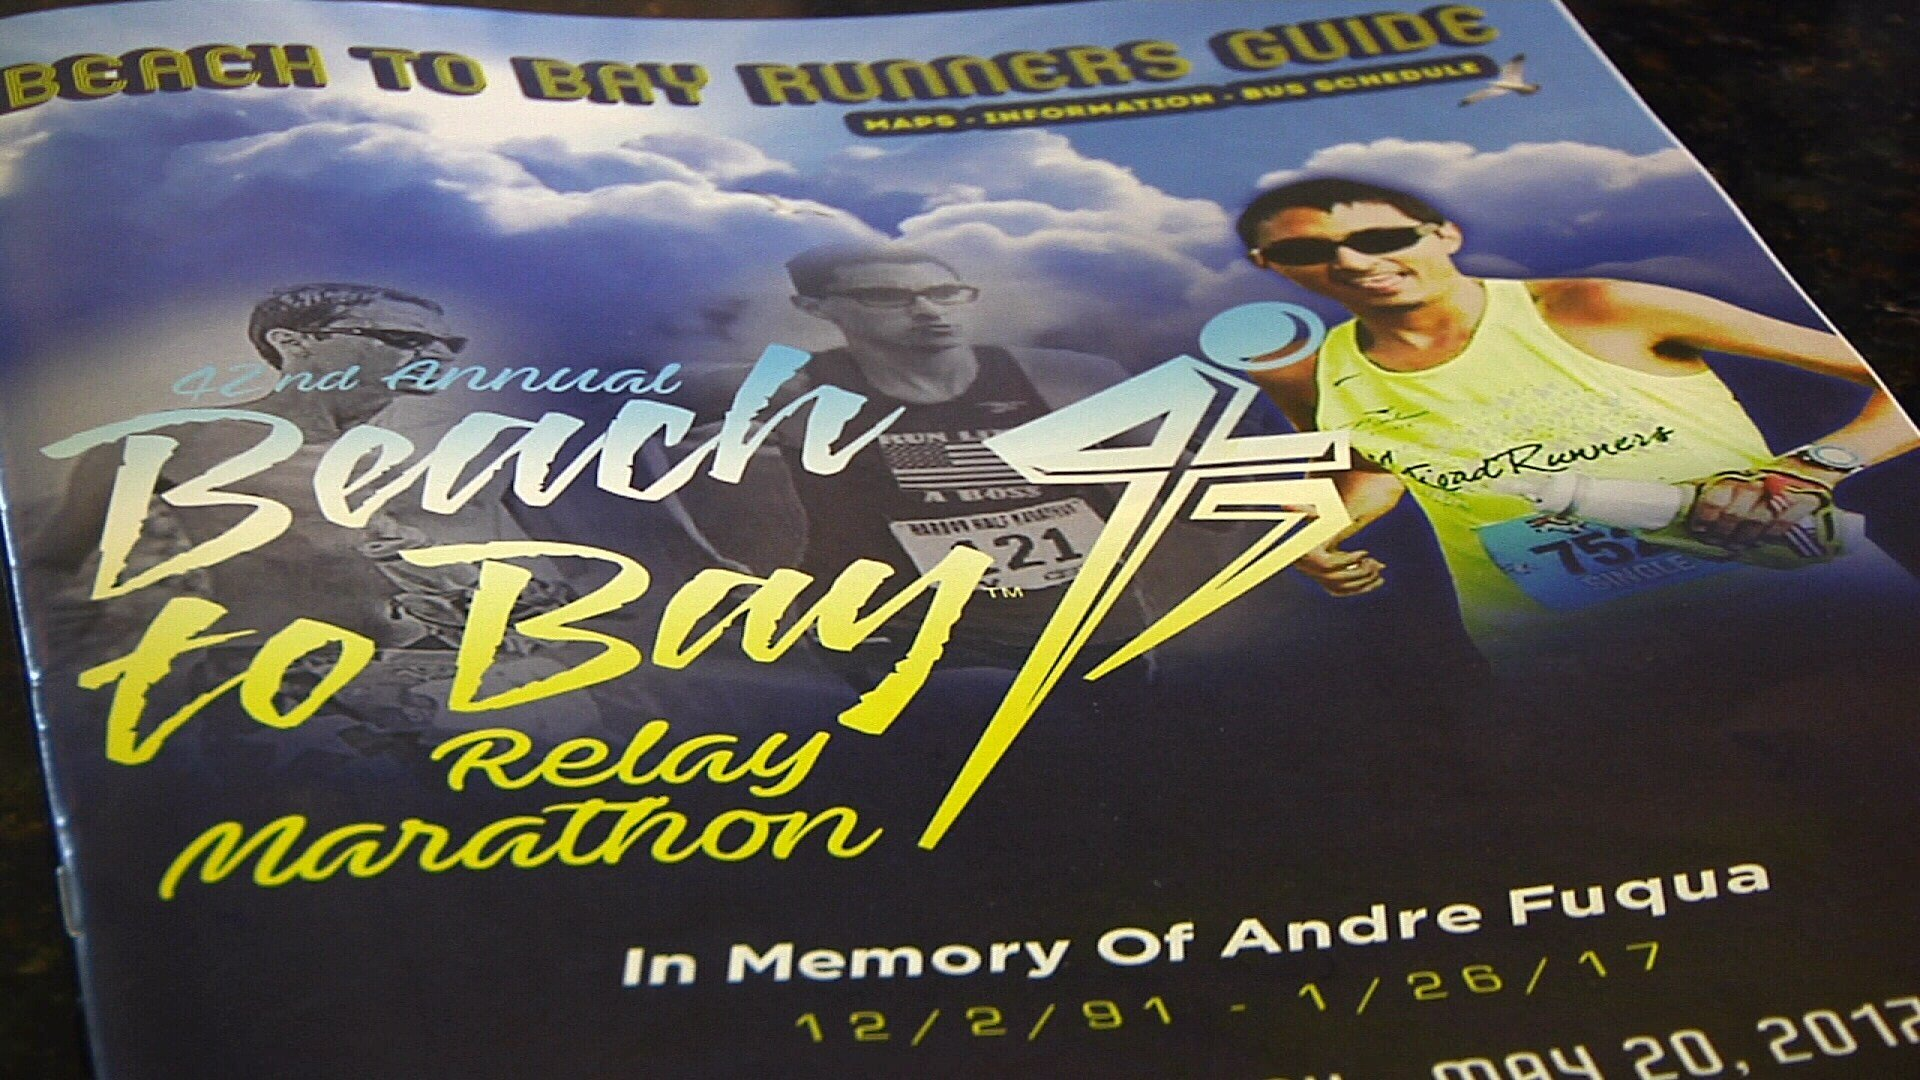 Beach to Bay organizers are honoring Andre Fuqua by placing his photo on the 2017 Beach to Bay program.